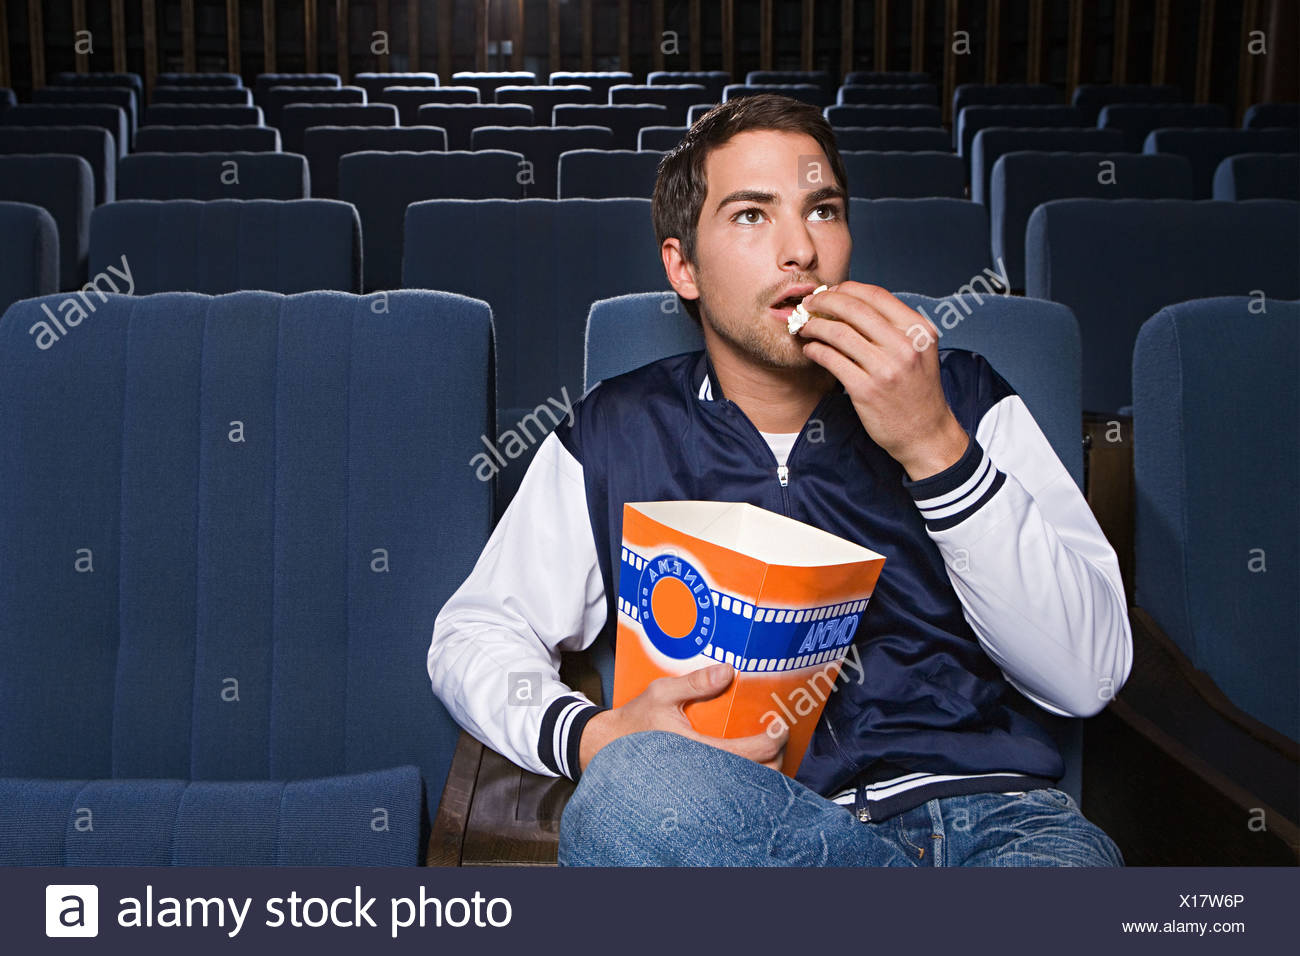 Man alone in the cinema - Stock Image